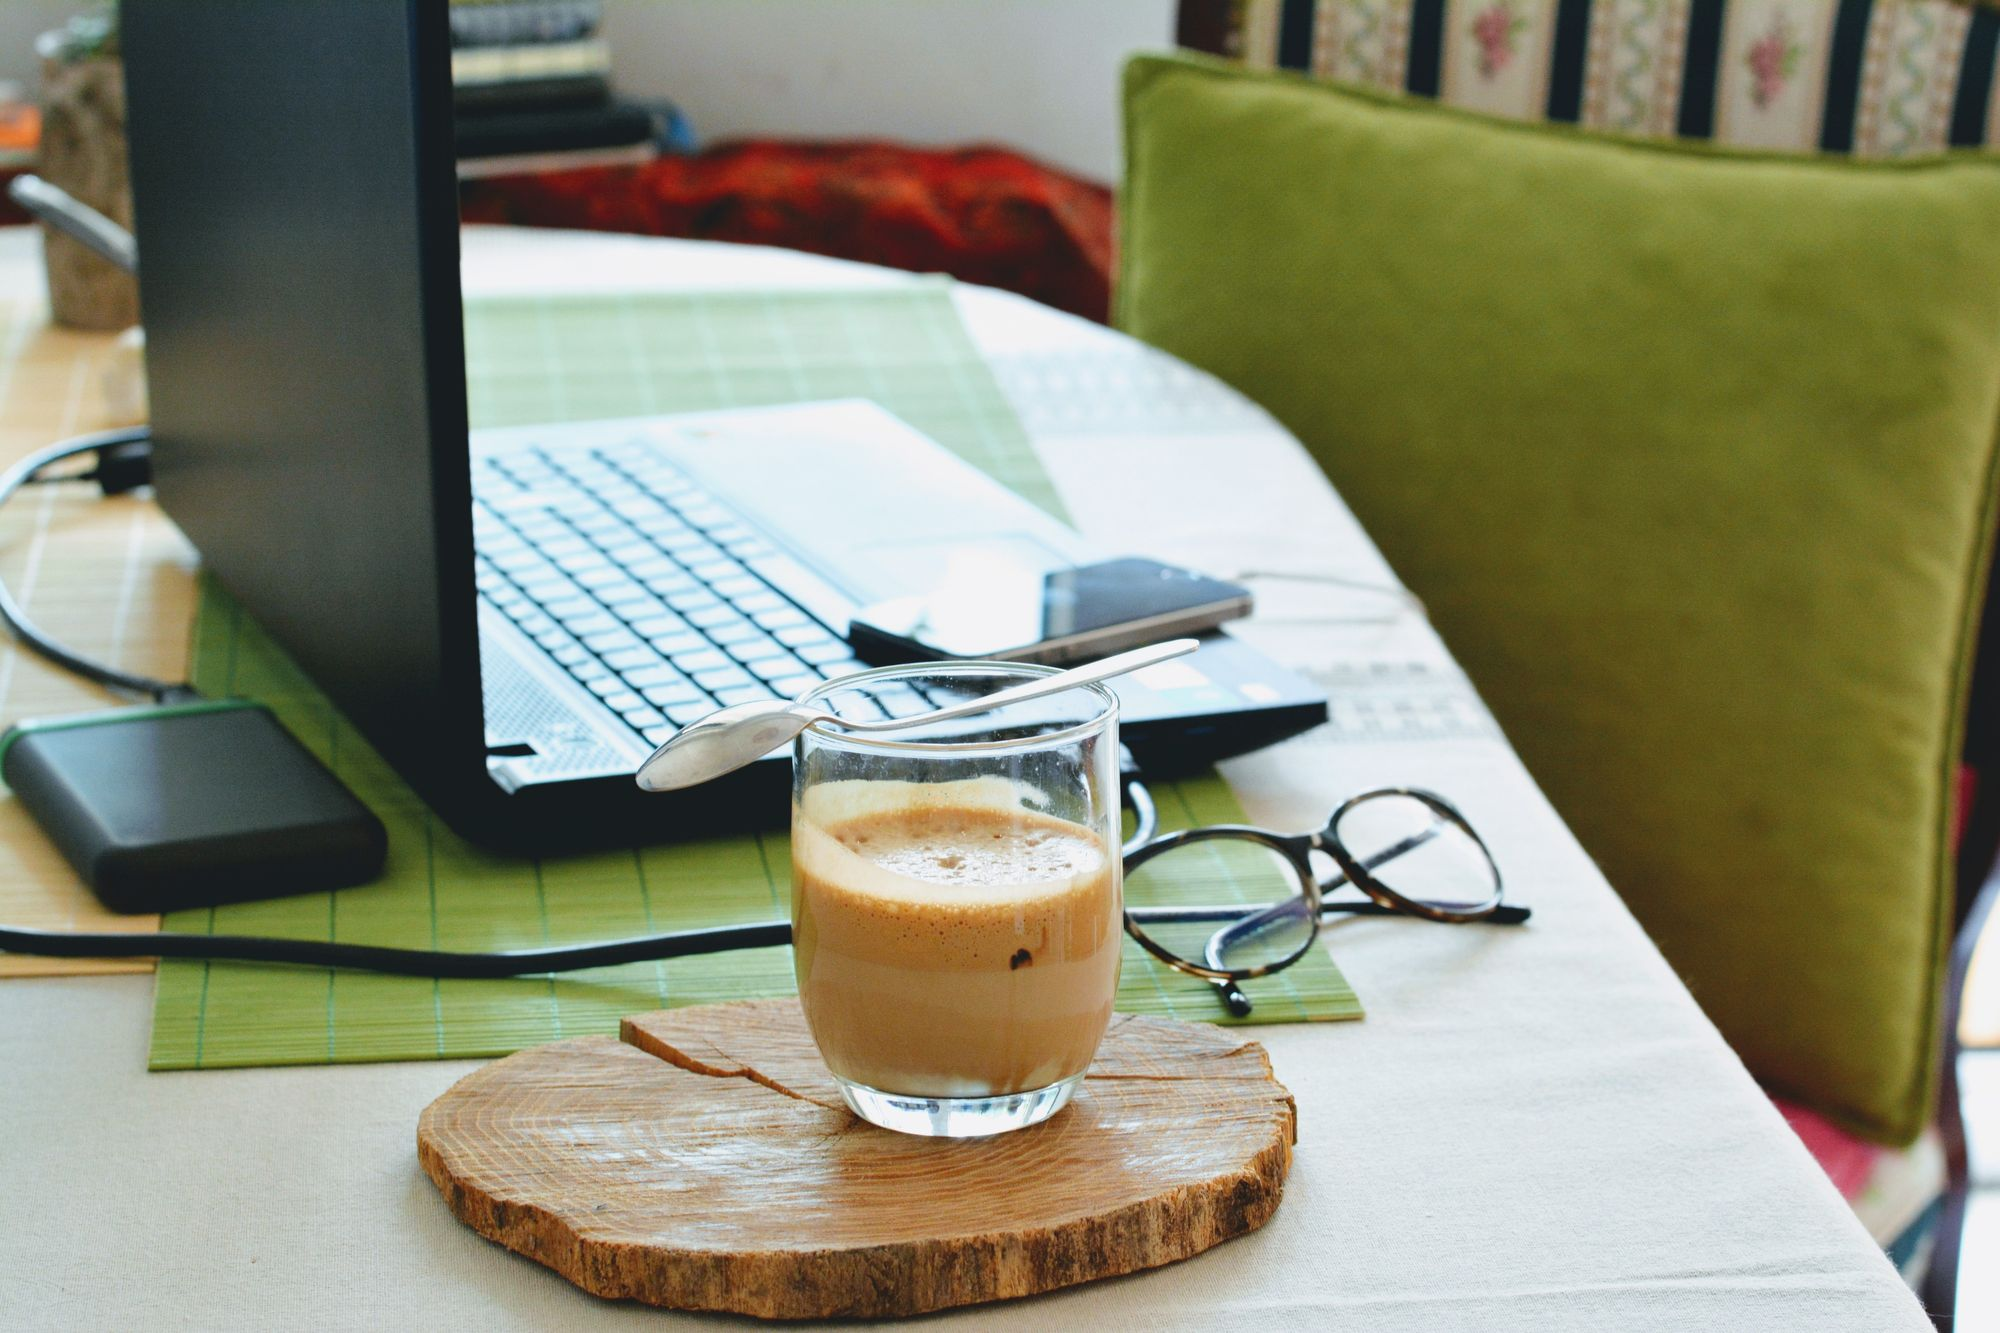 Keys to Working From Home Successfully